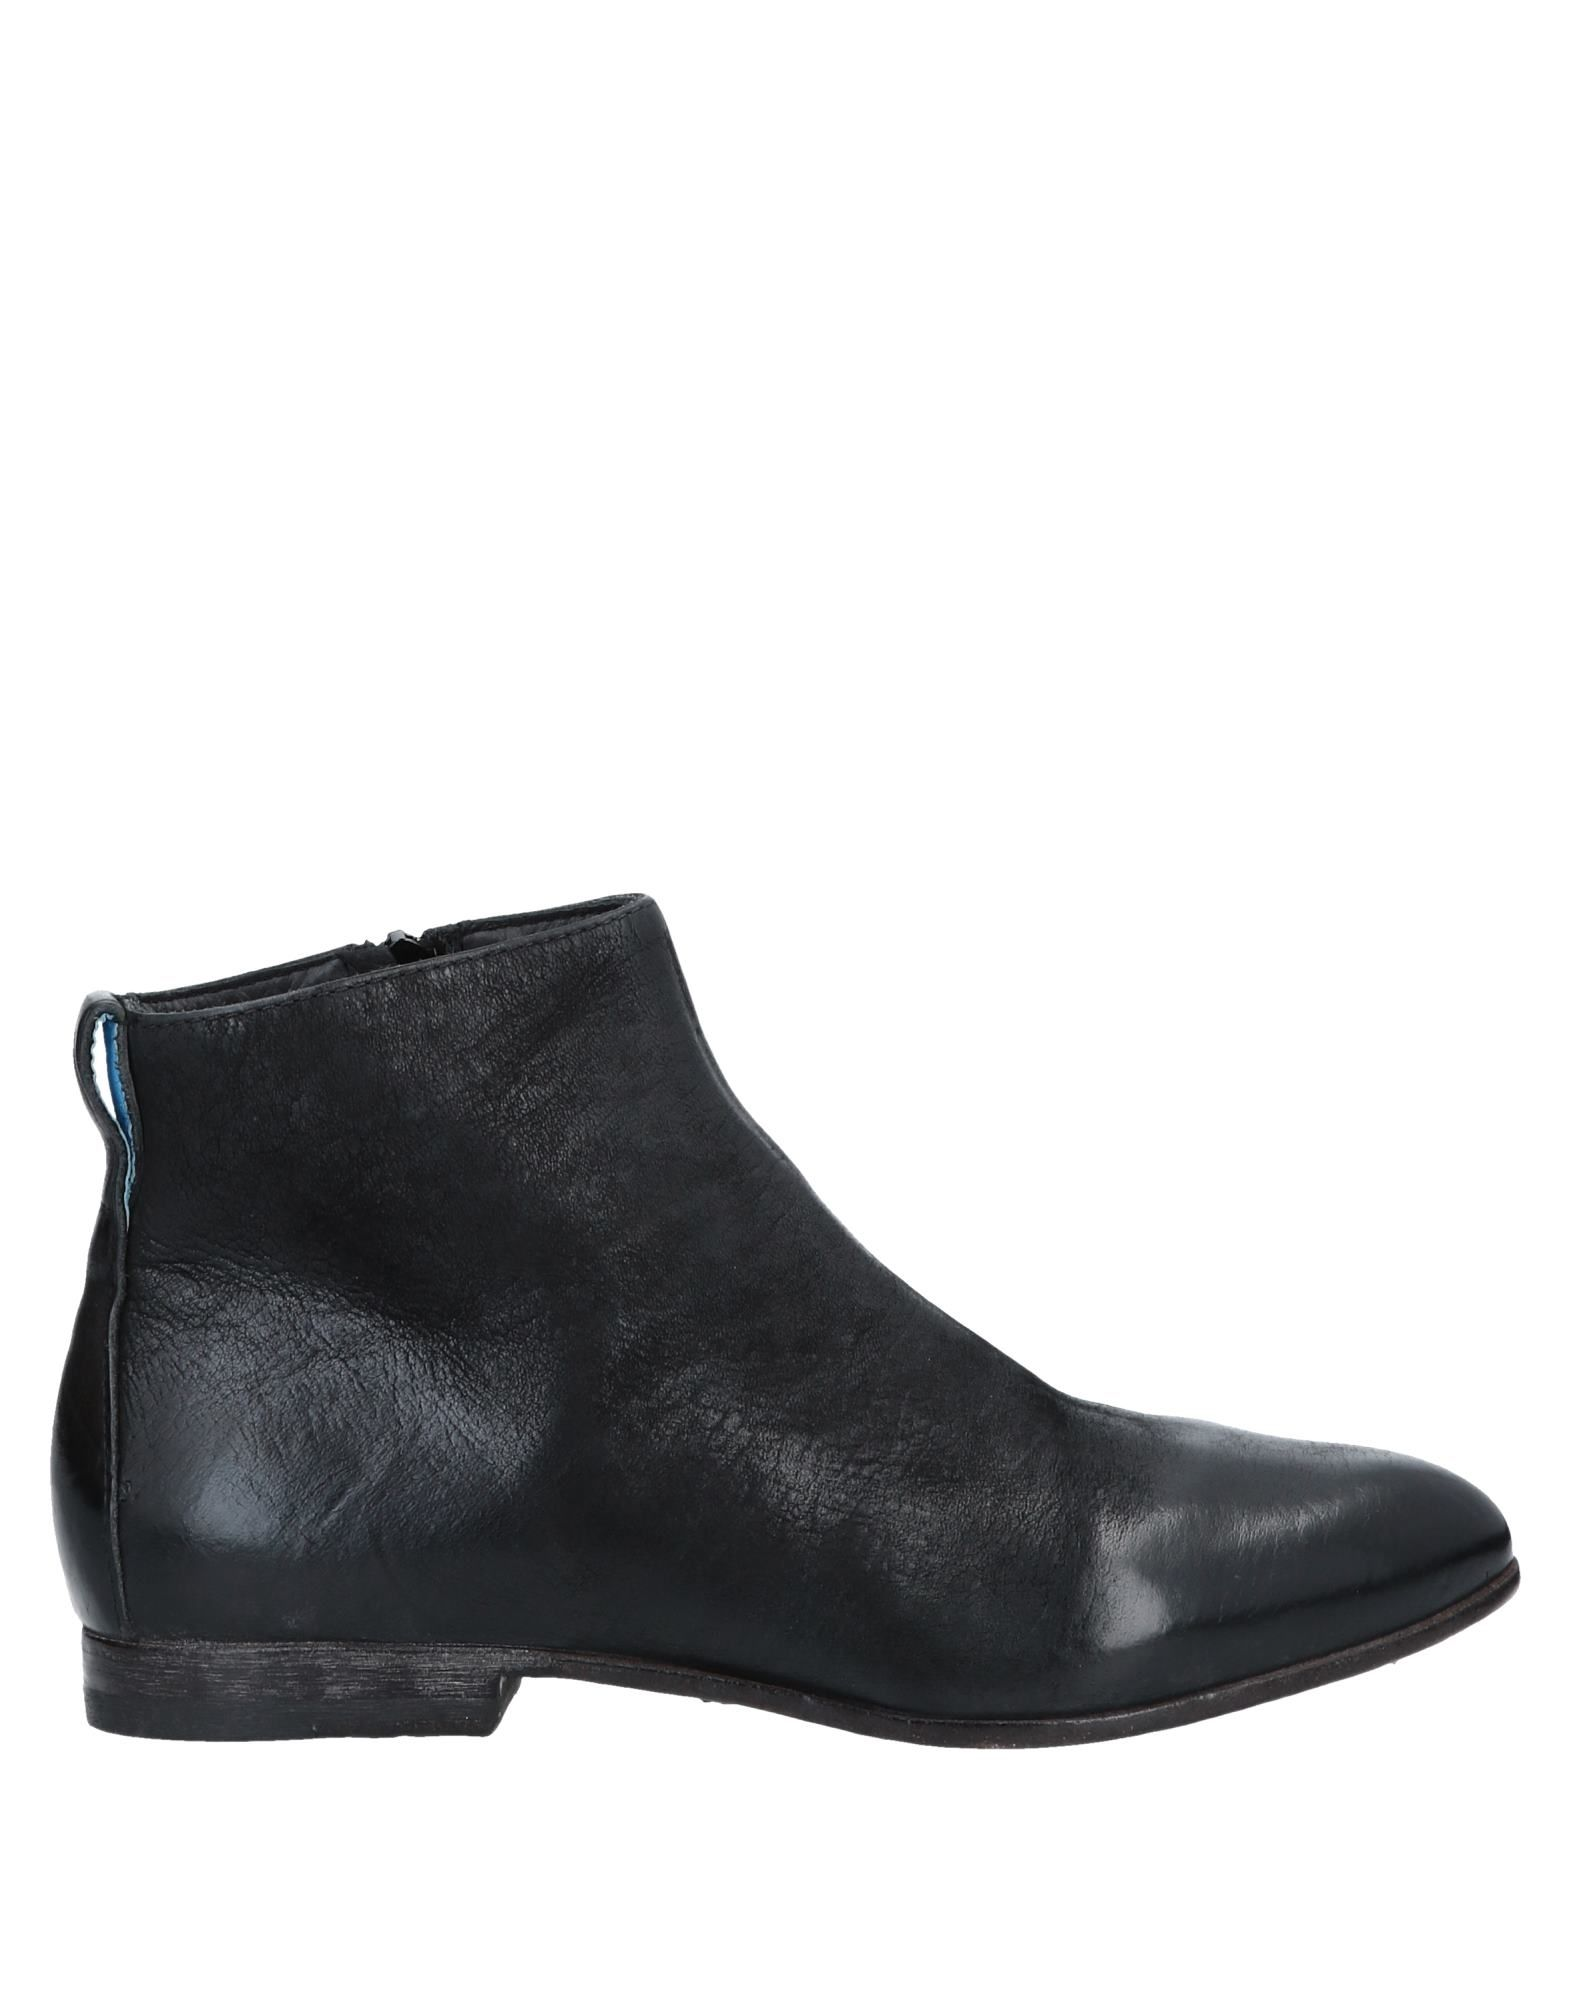 Moma Boots ANKLE BOOTS